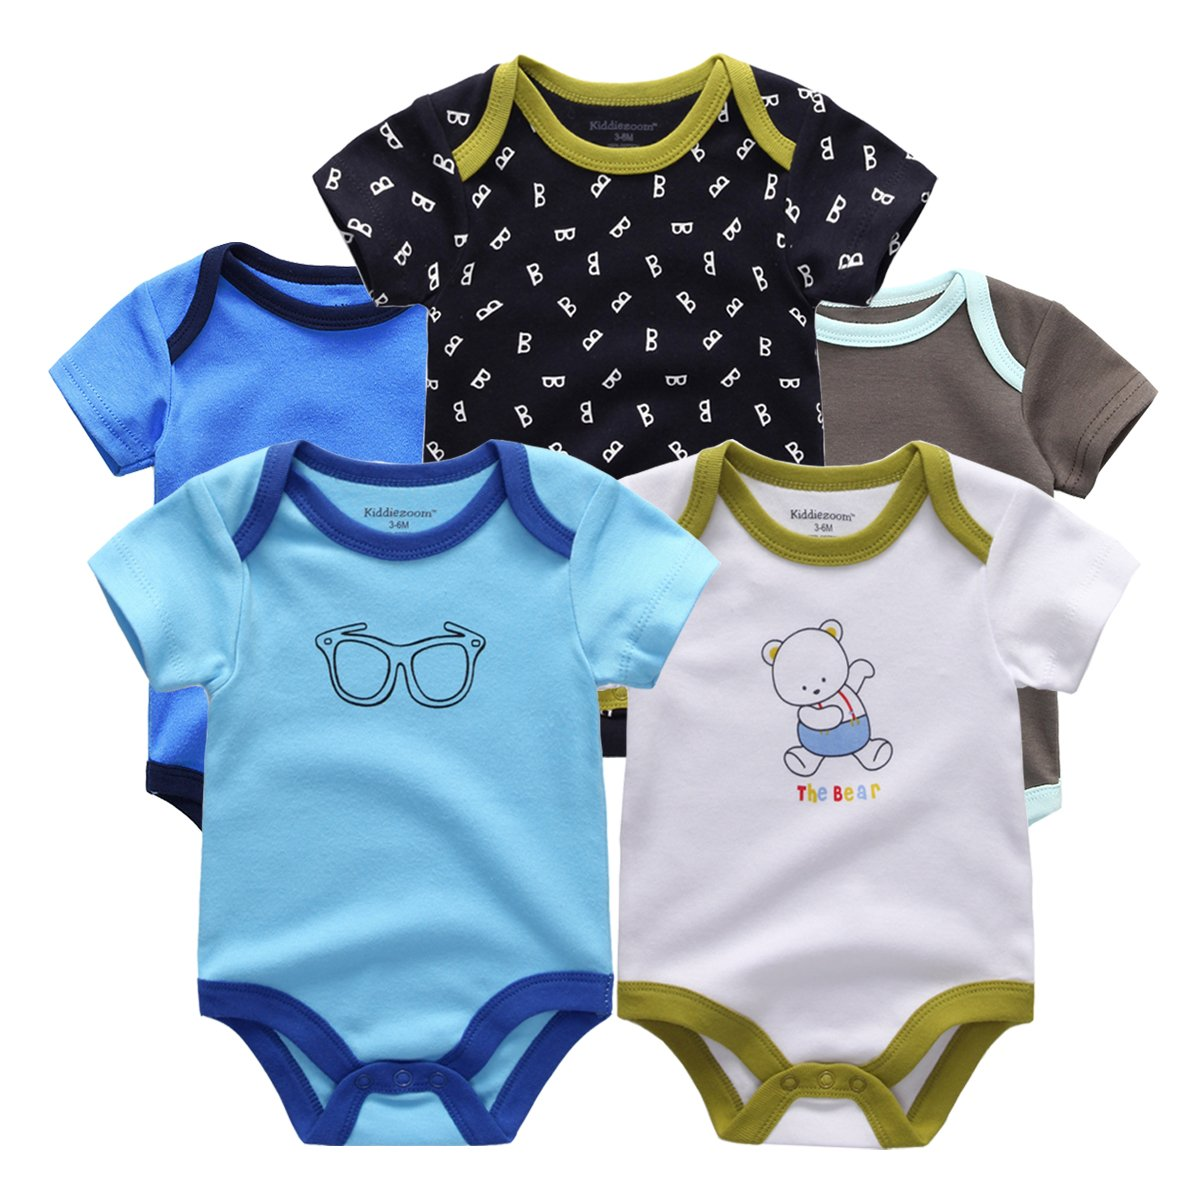 Kiddiezoom Baby Boys Girls Bodysuits Short Sleeve 100% Cotton, 5 Packs (9-12M, Glasses and Bear) by Kiddiezoom